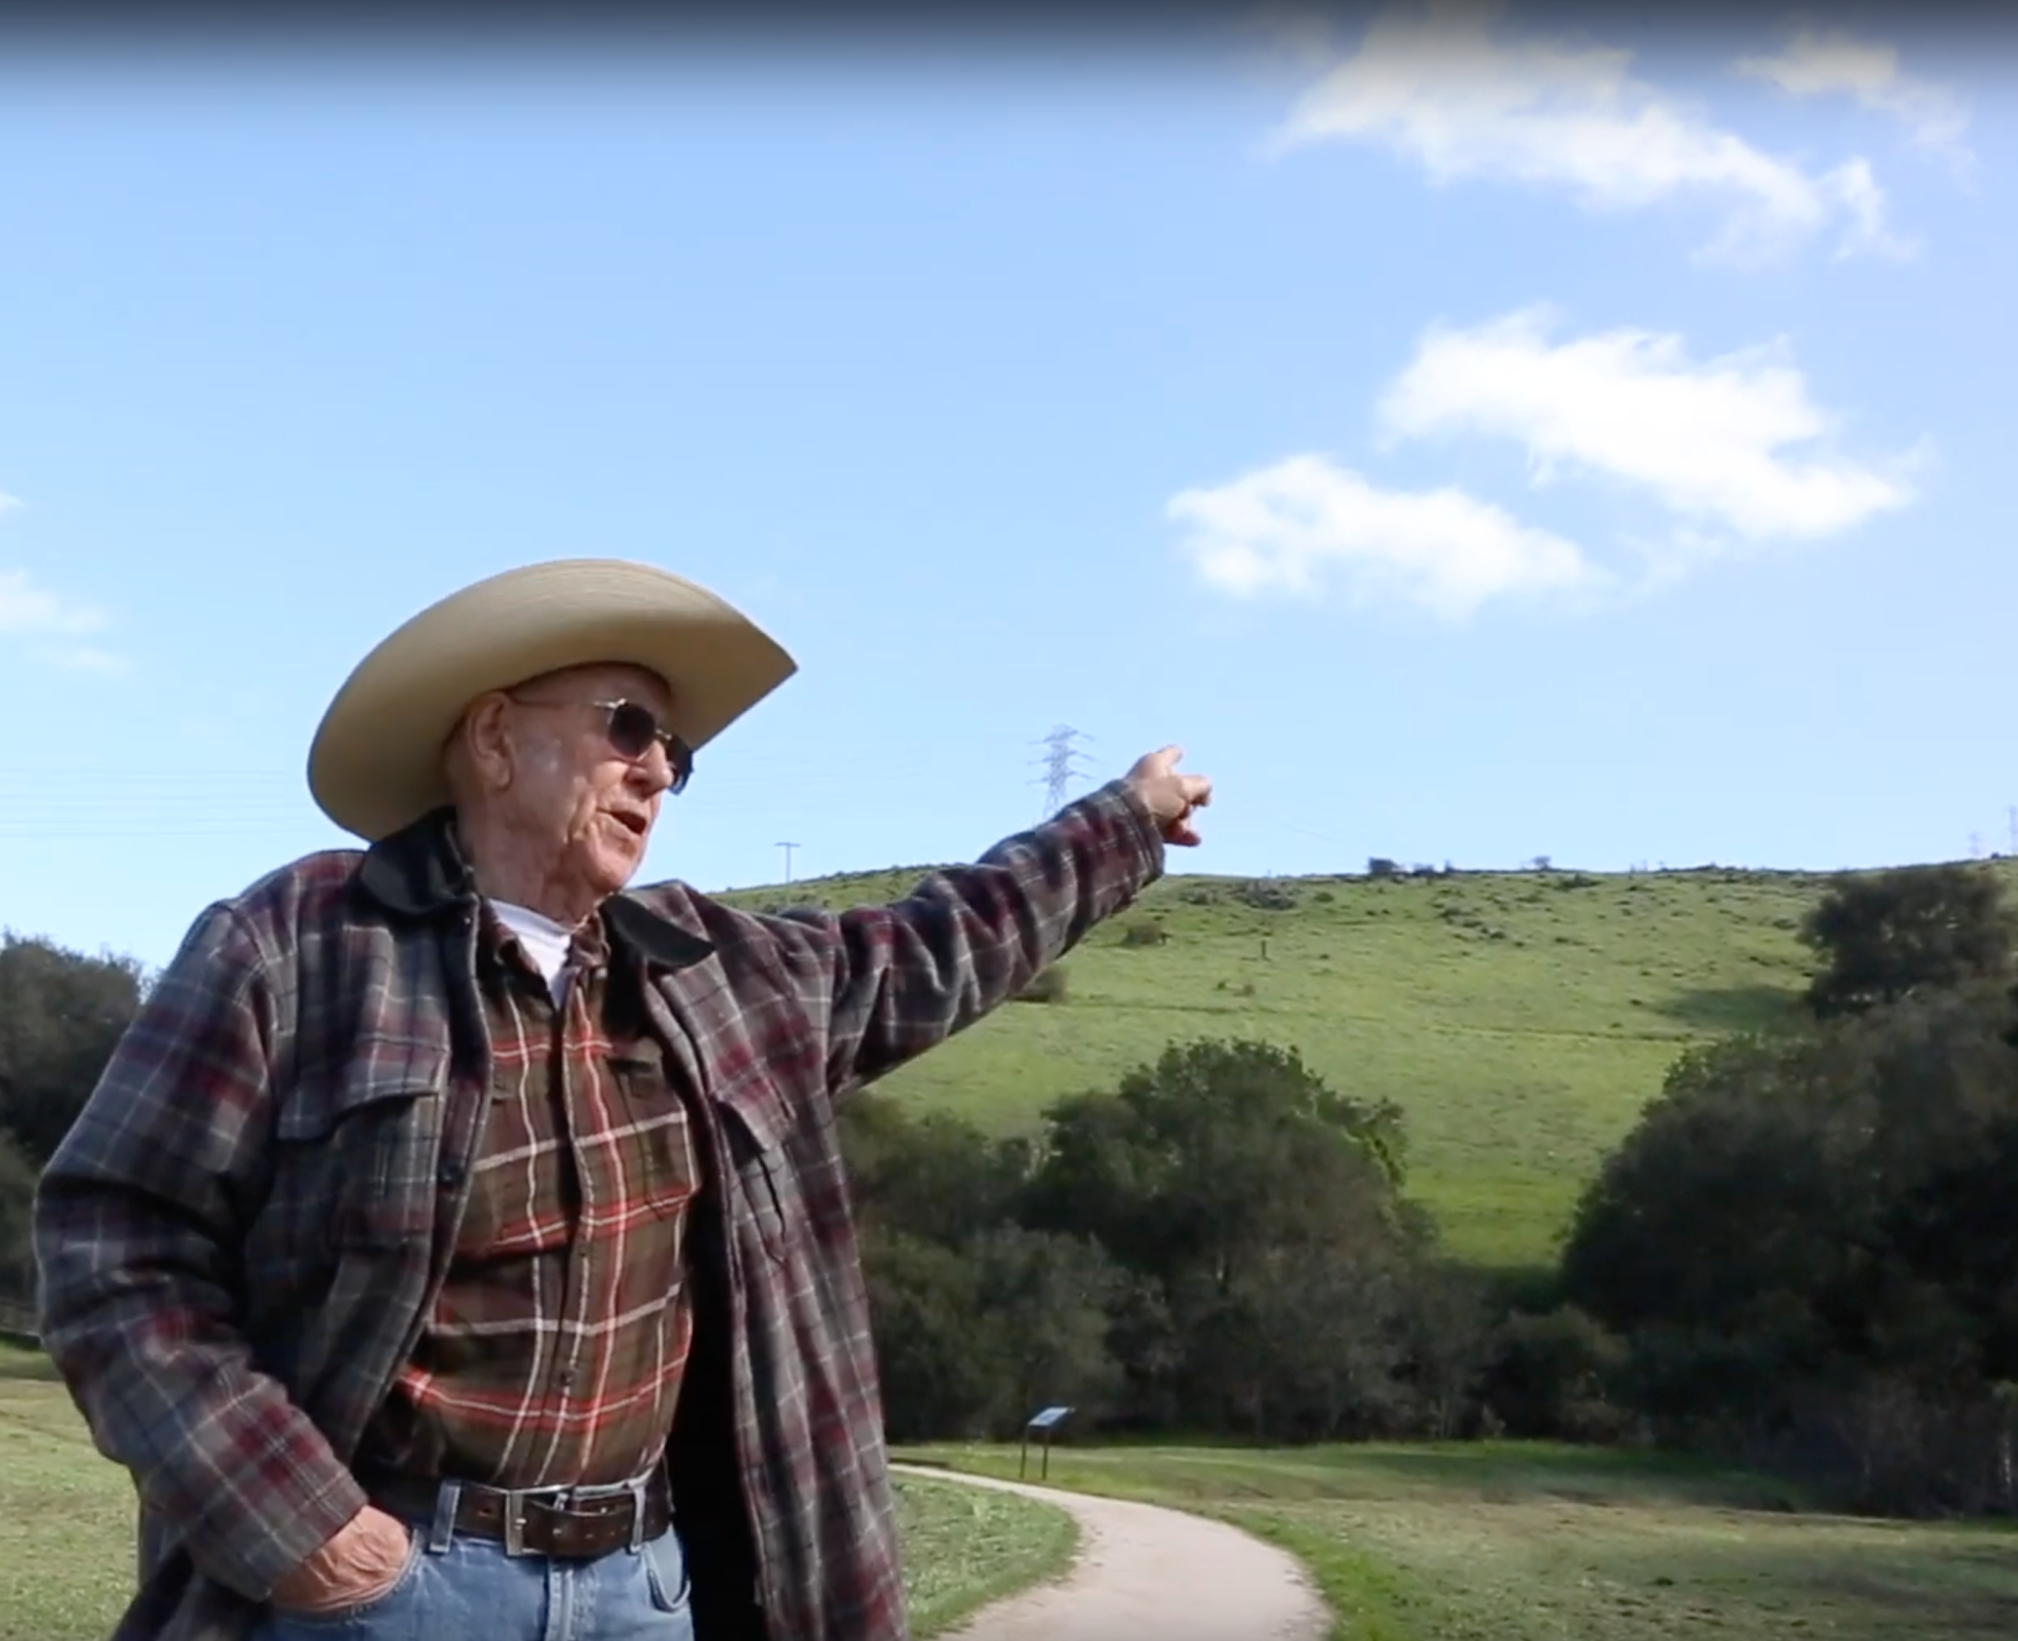 Bernal Ranch: Unlikely cowboy recalls his youth